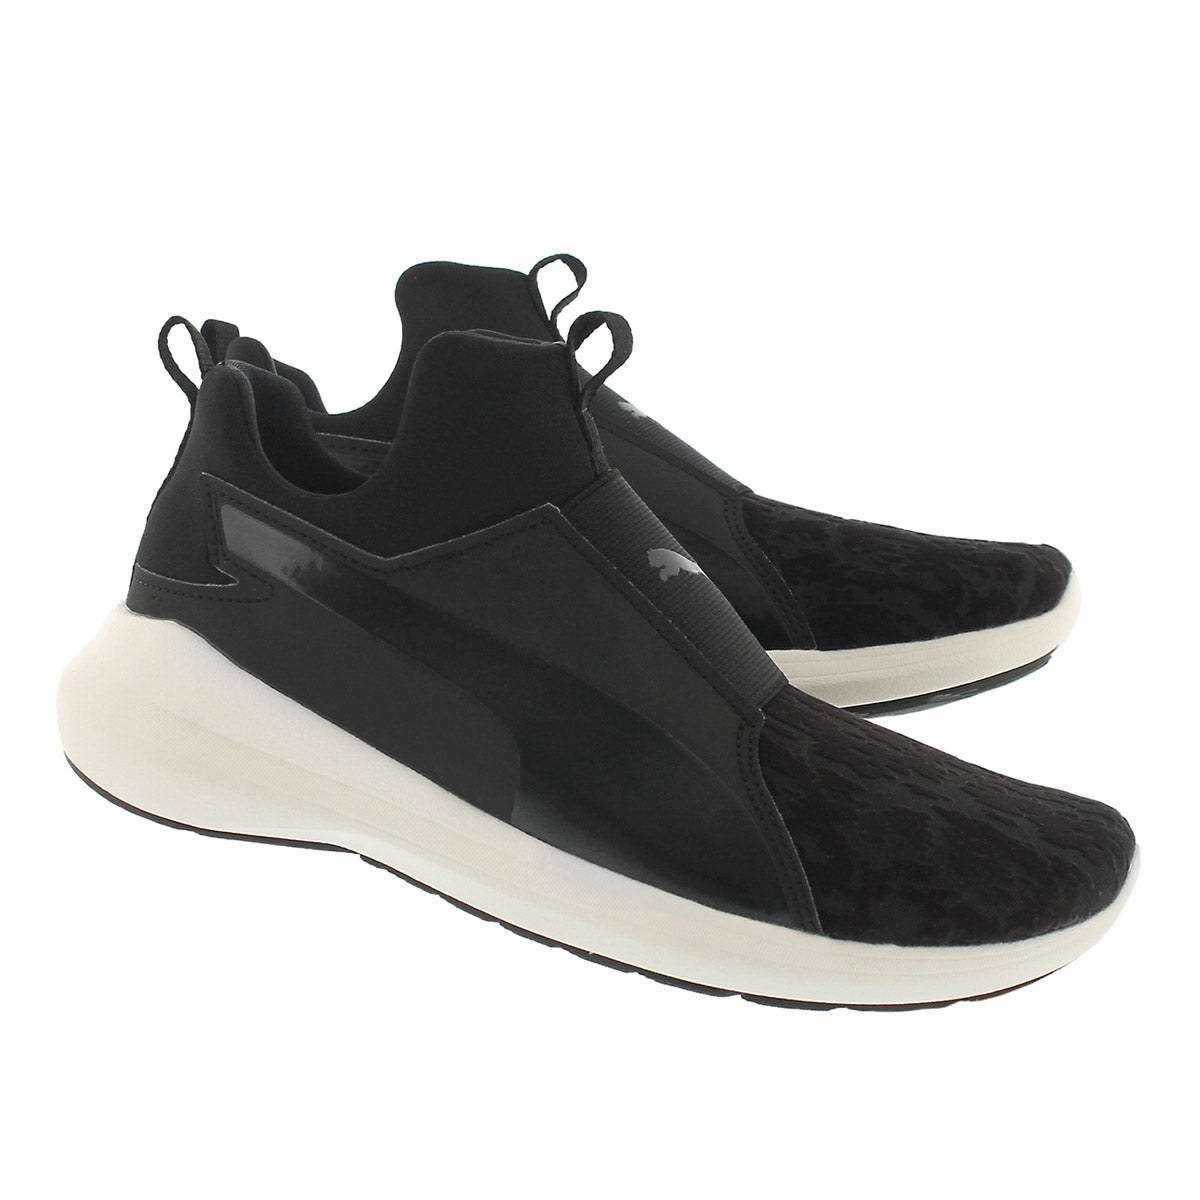 Lds RebelMidVelvetRope black slipon snkr